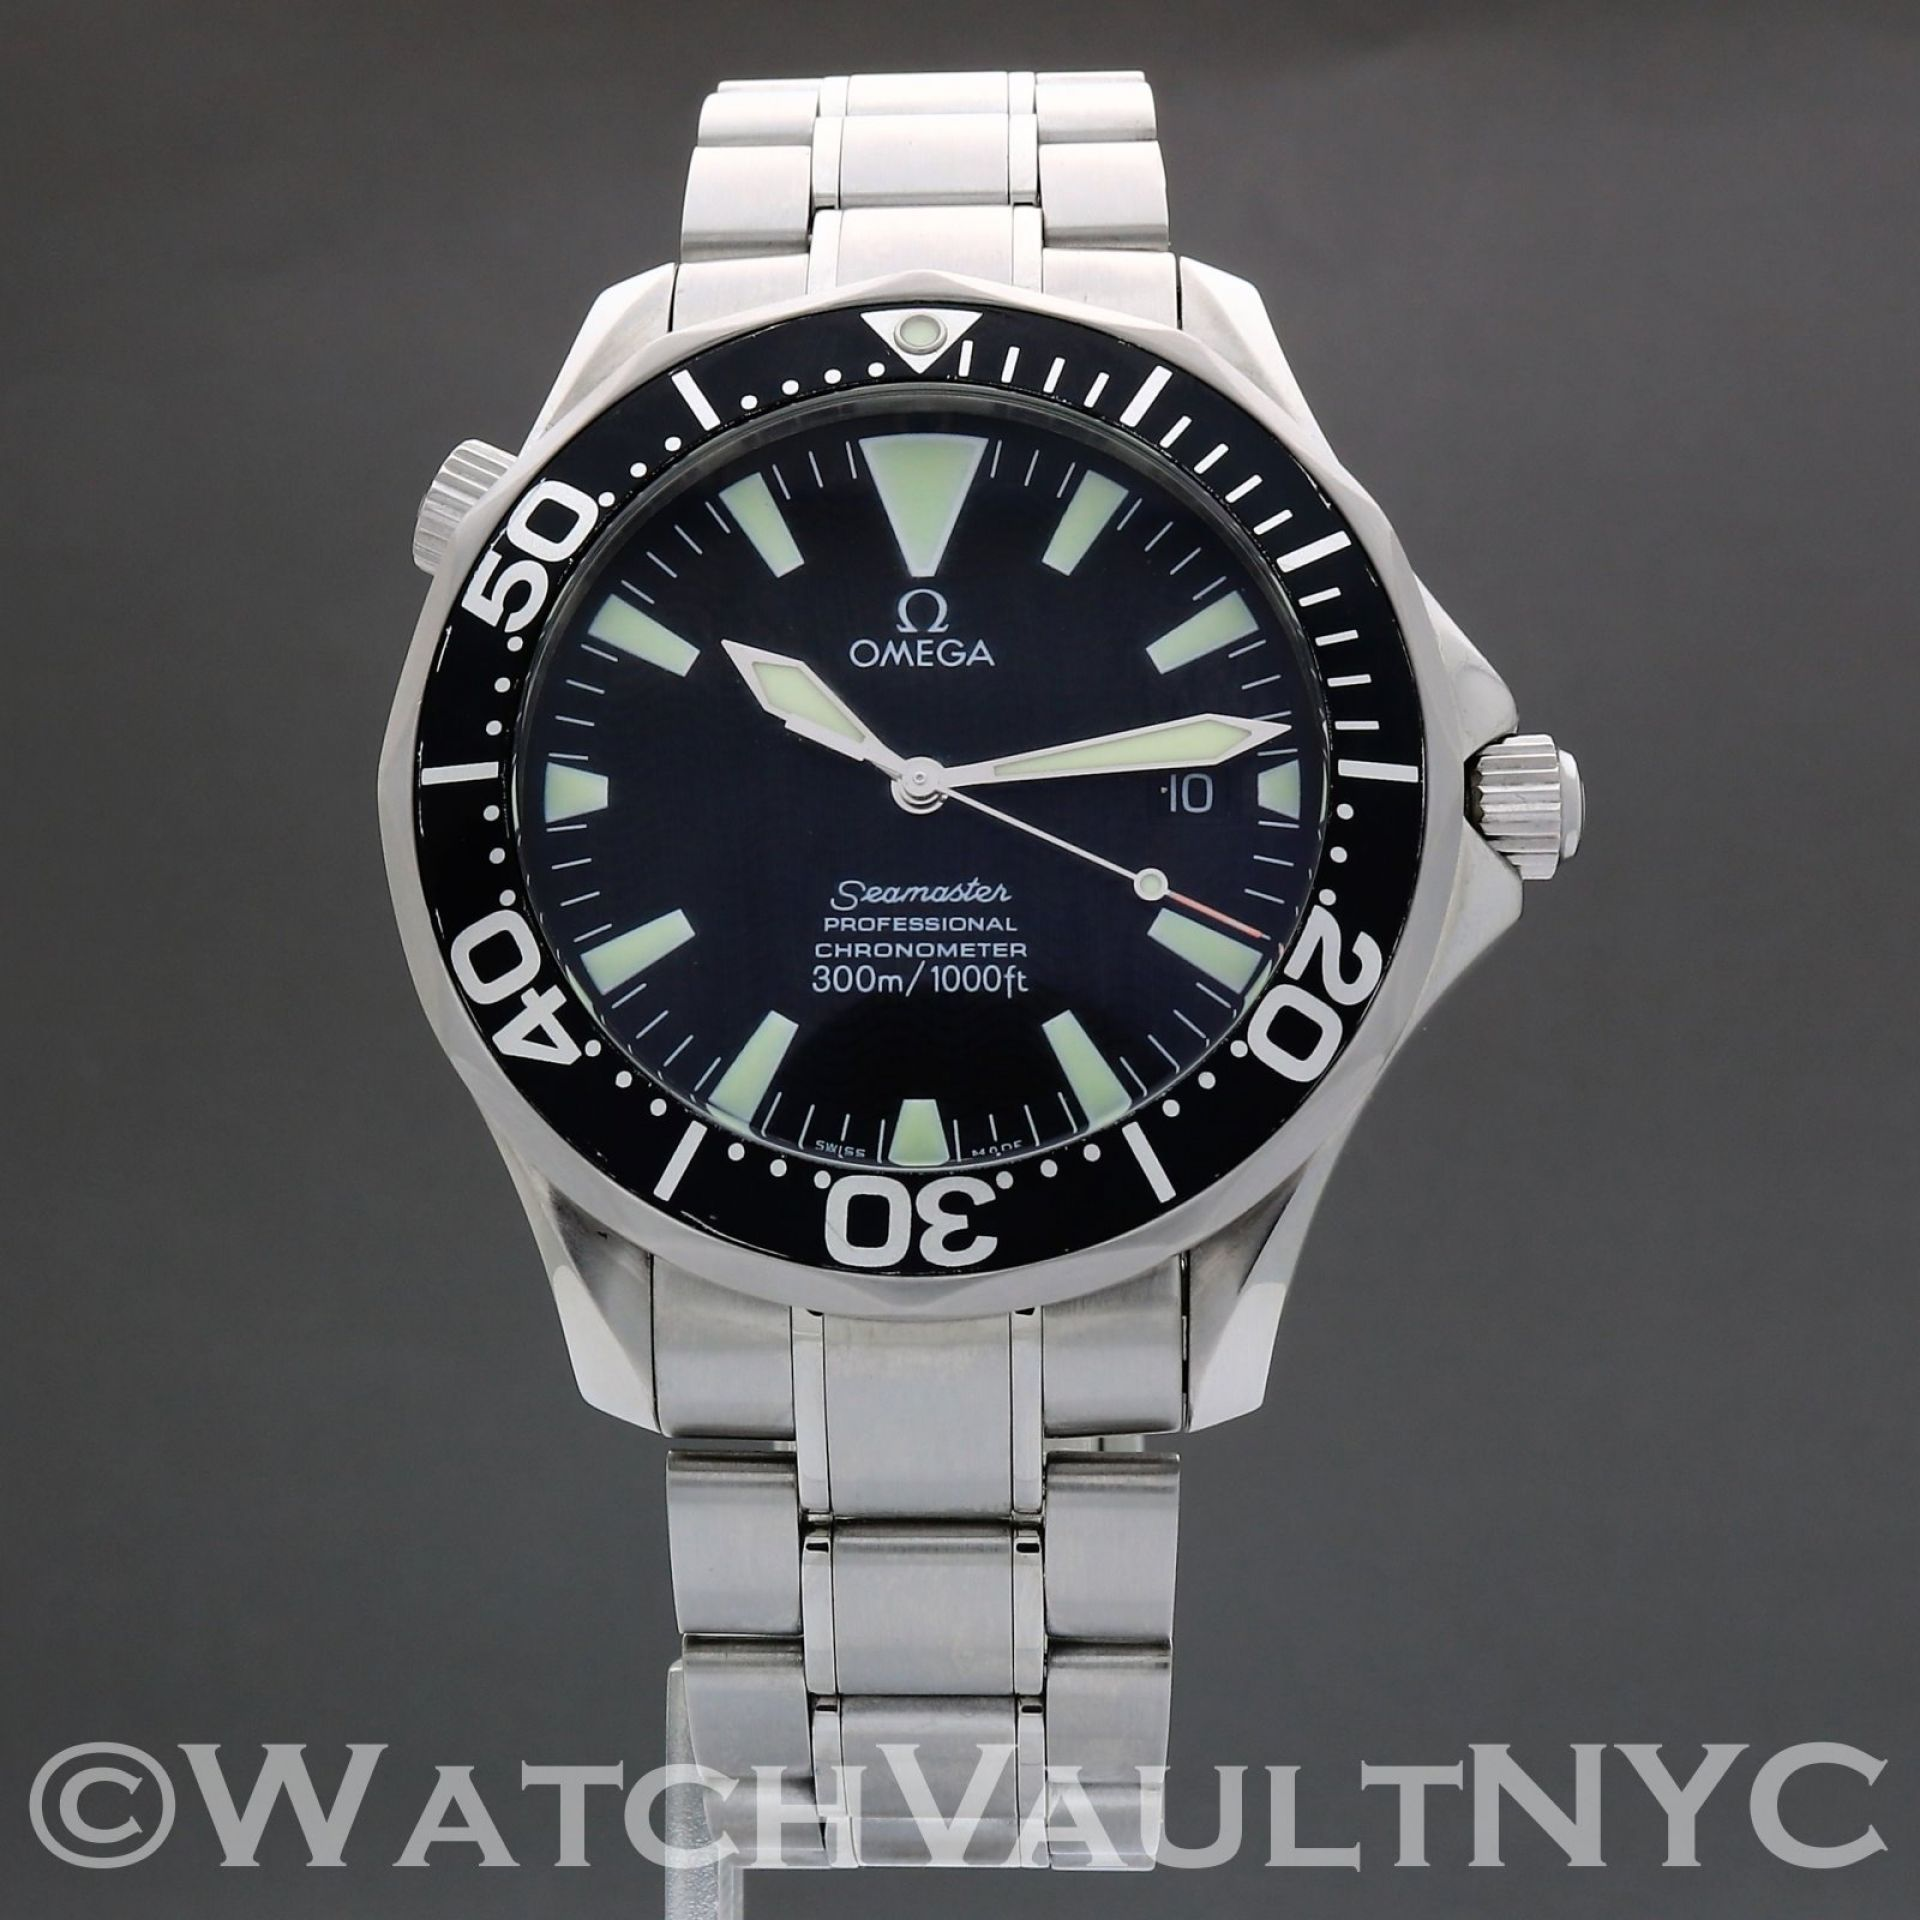 Omega Seamaster Professional 300M 2254.50 Sword Hands 41mm Auto SC506